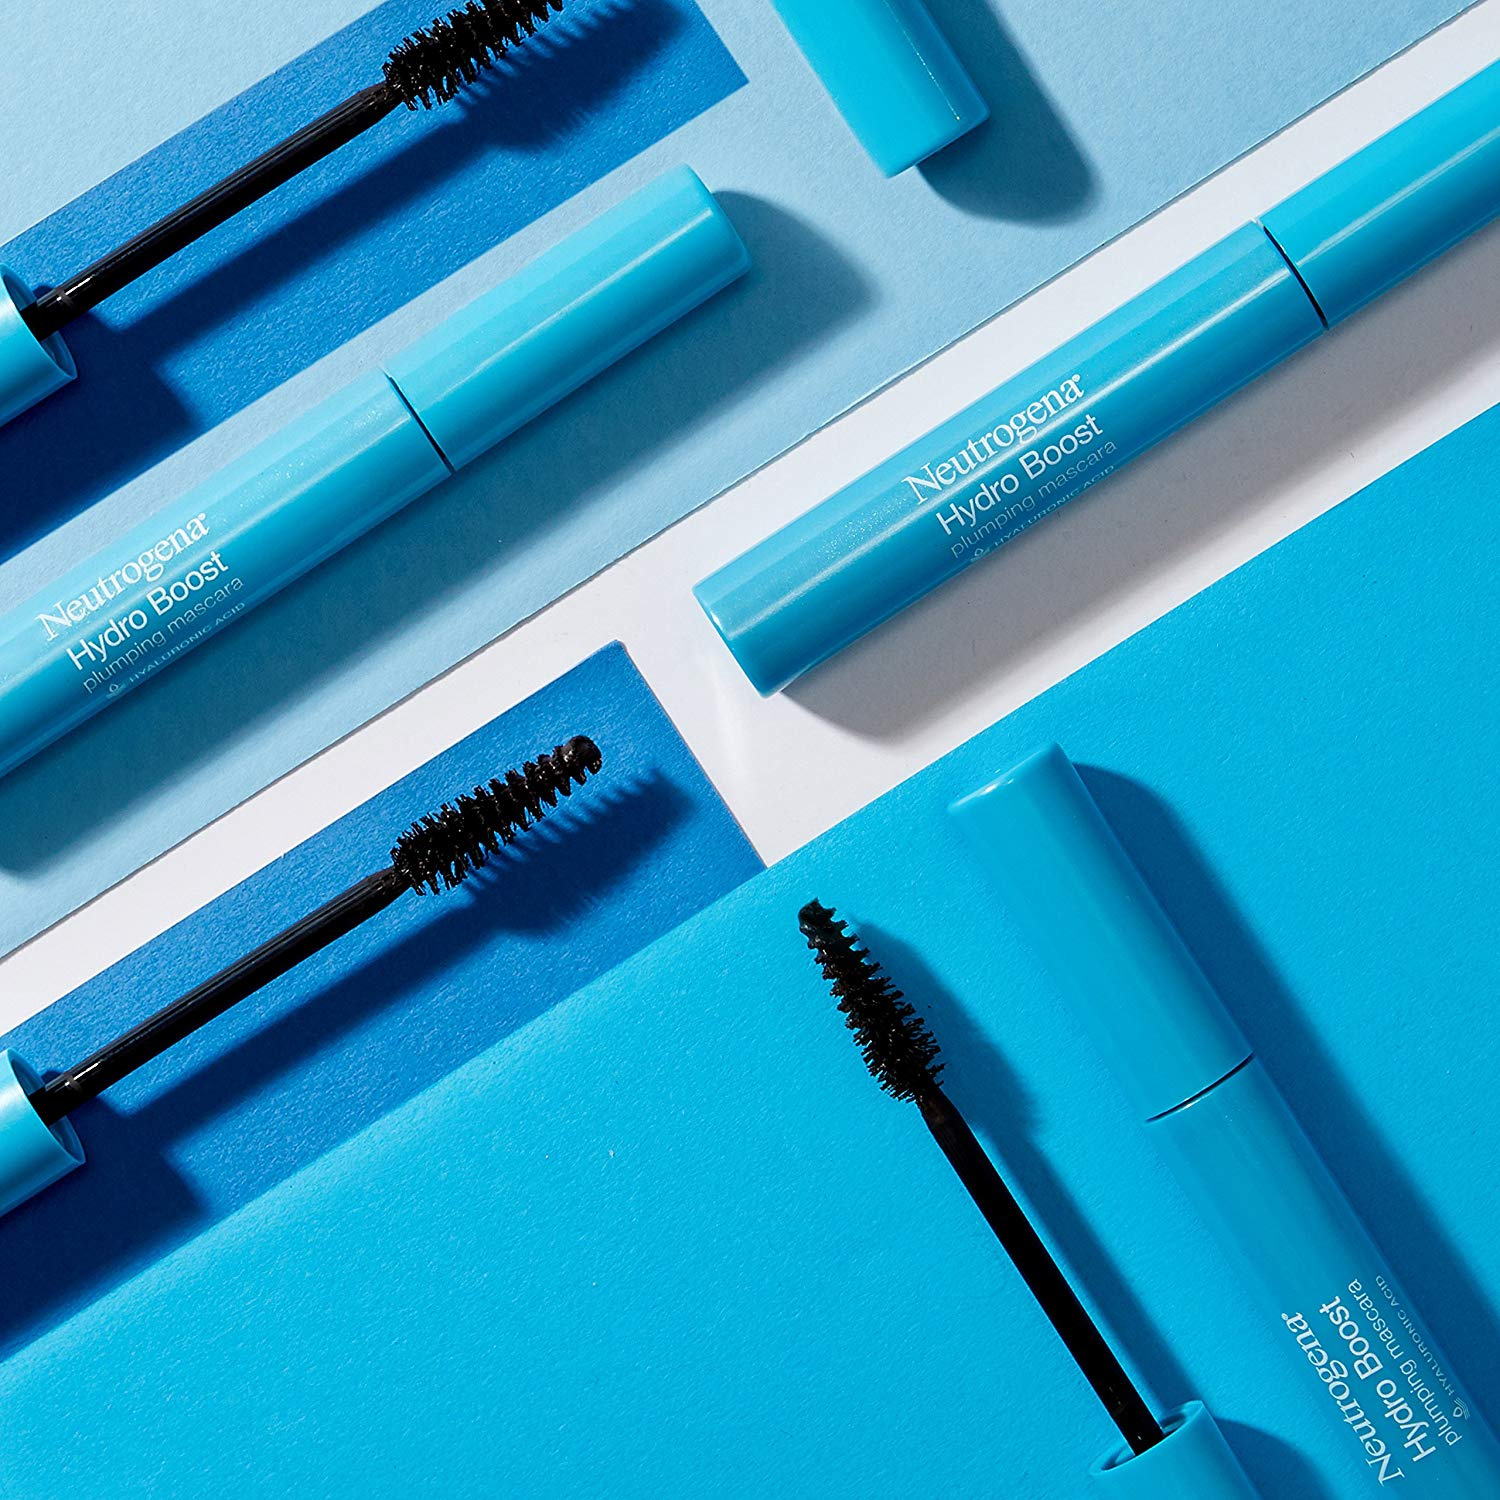 55ca1ff40e0 Neutrogena Hydro Boost Plumping Mascara Enriched with Hyaluronic ...